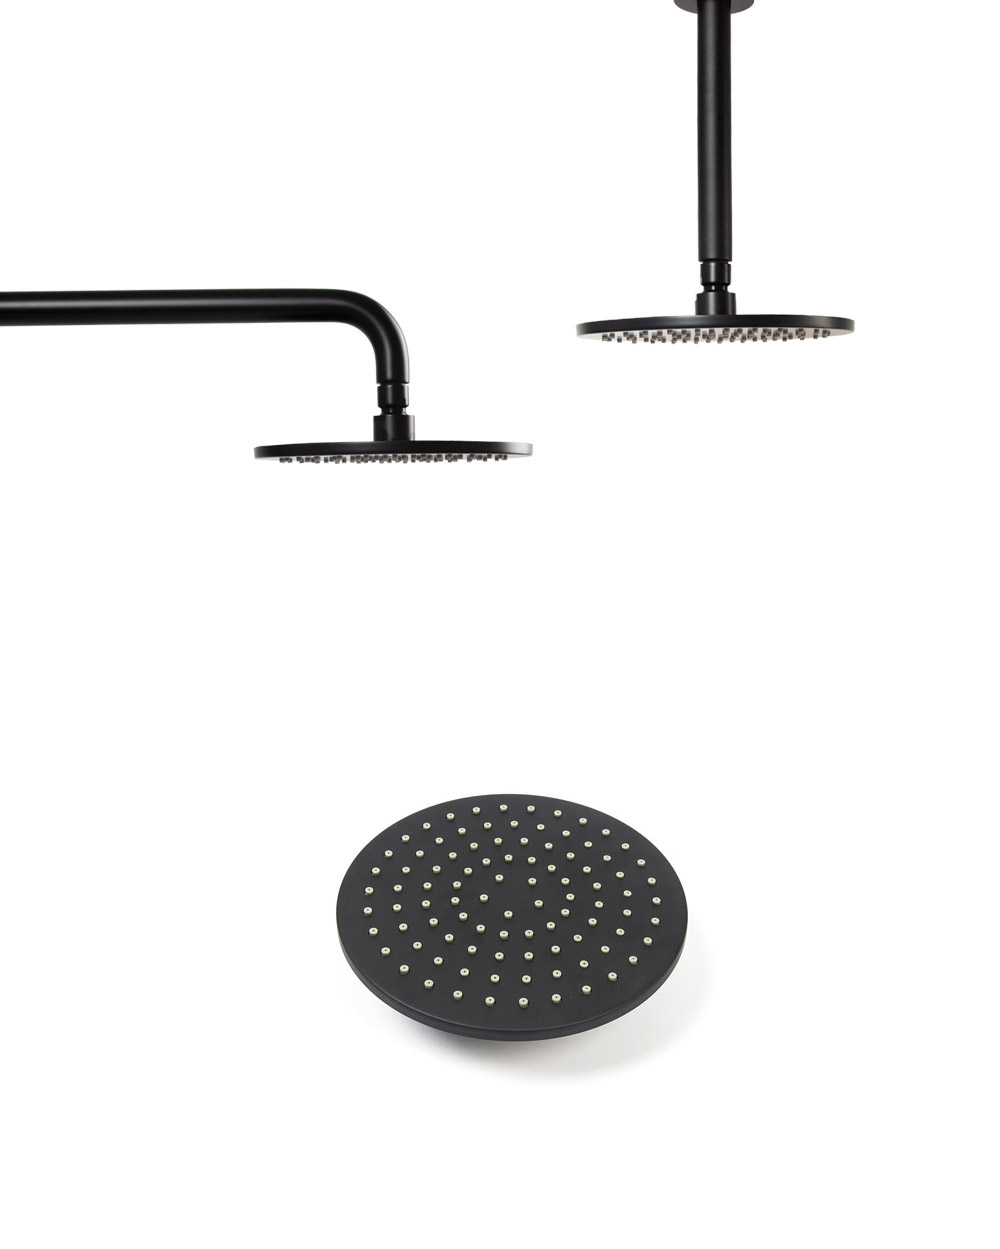 Us 22 52 22 Off Matt Black Round Square Rain Shower Head Black Shower Arm Wall Mouned And Ceiling Mounted Brass Bathroom Shower In Shower Heads